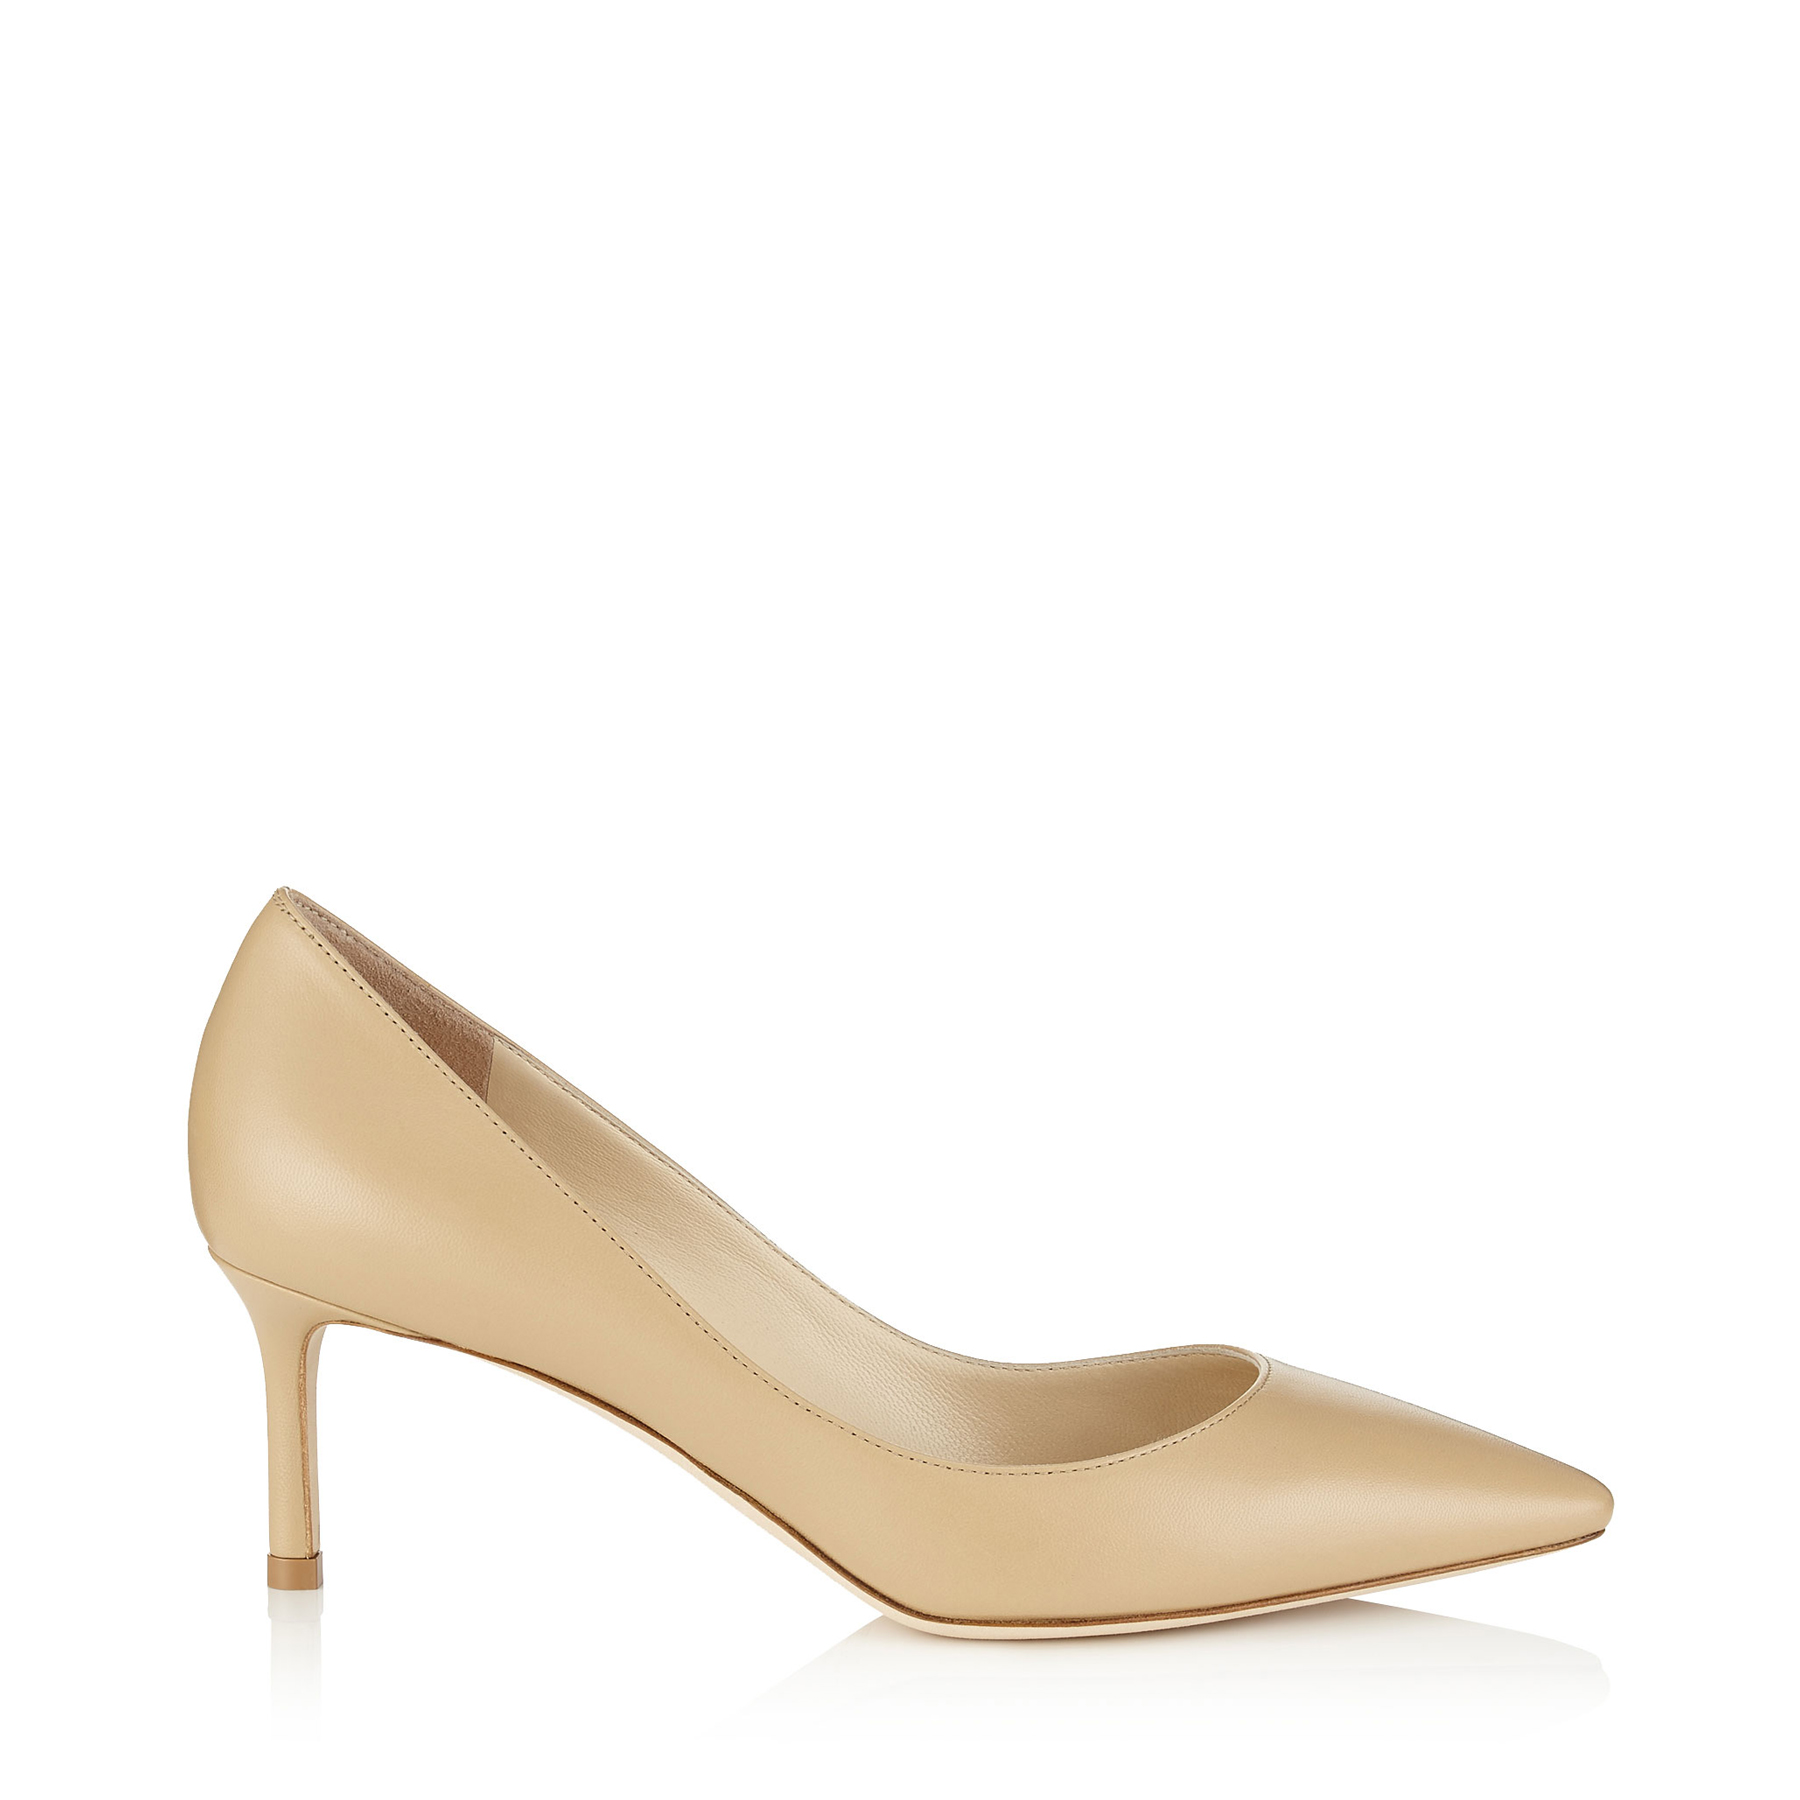 ROMY 60 Nude Kid Leather Pointy Toe Pumps